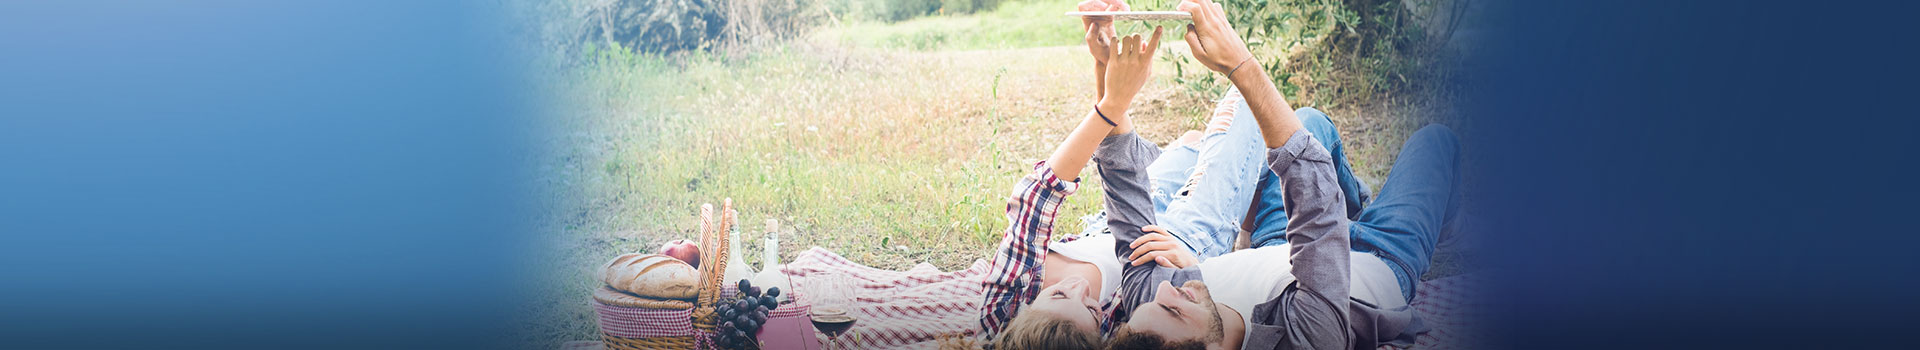 Young couple on picnic blanket looking at something on mobile phone